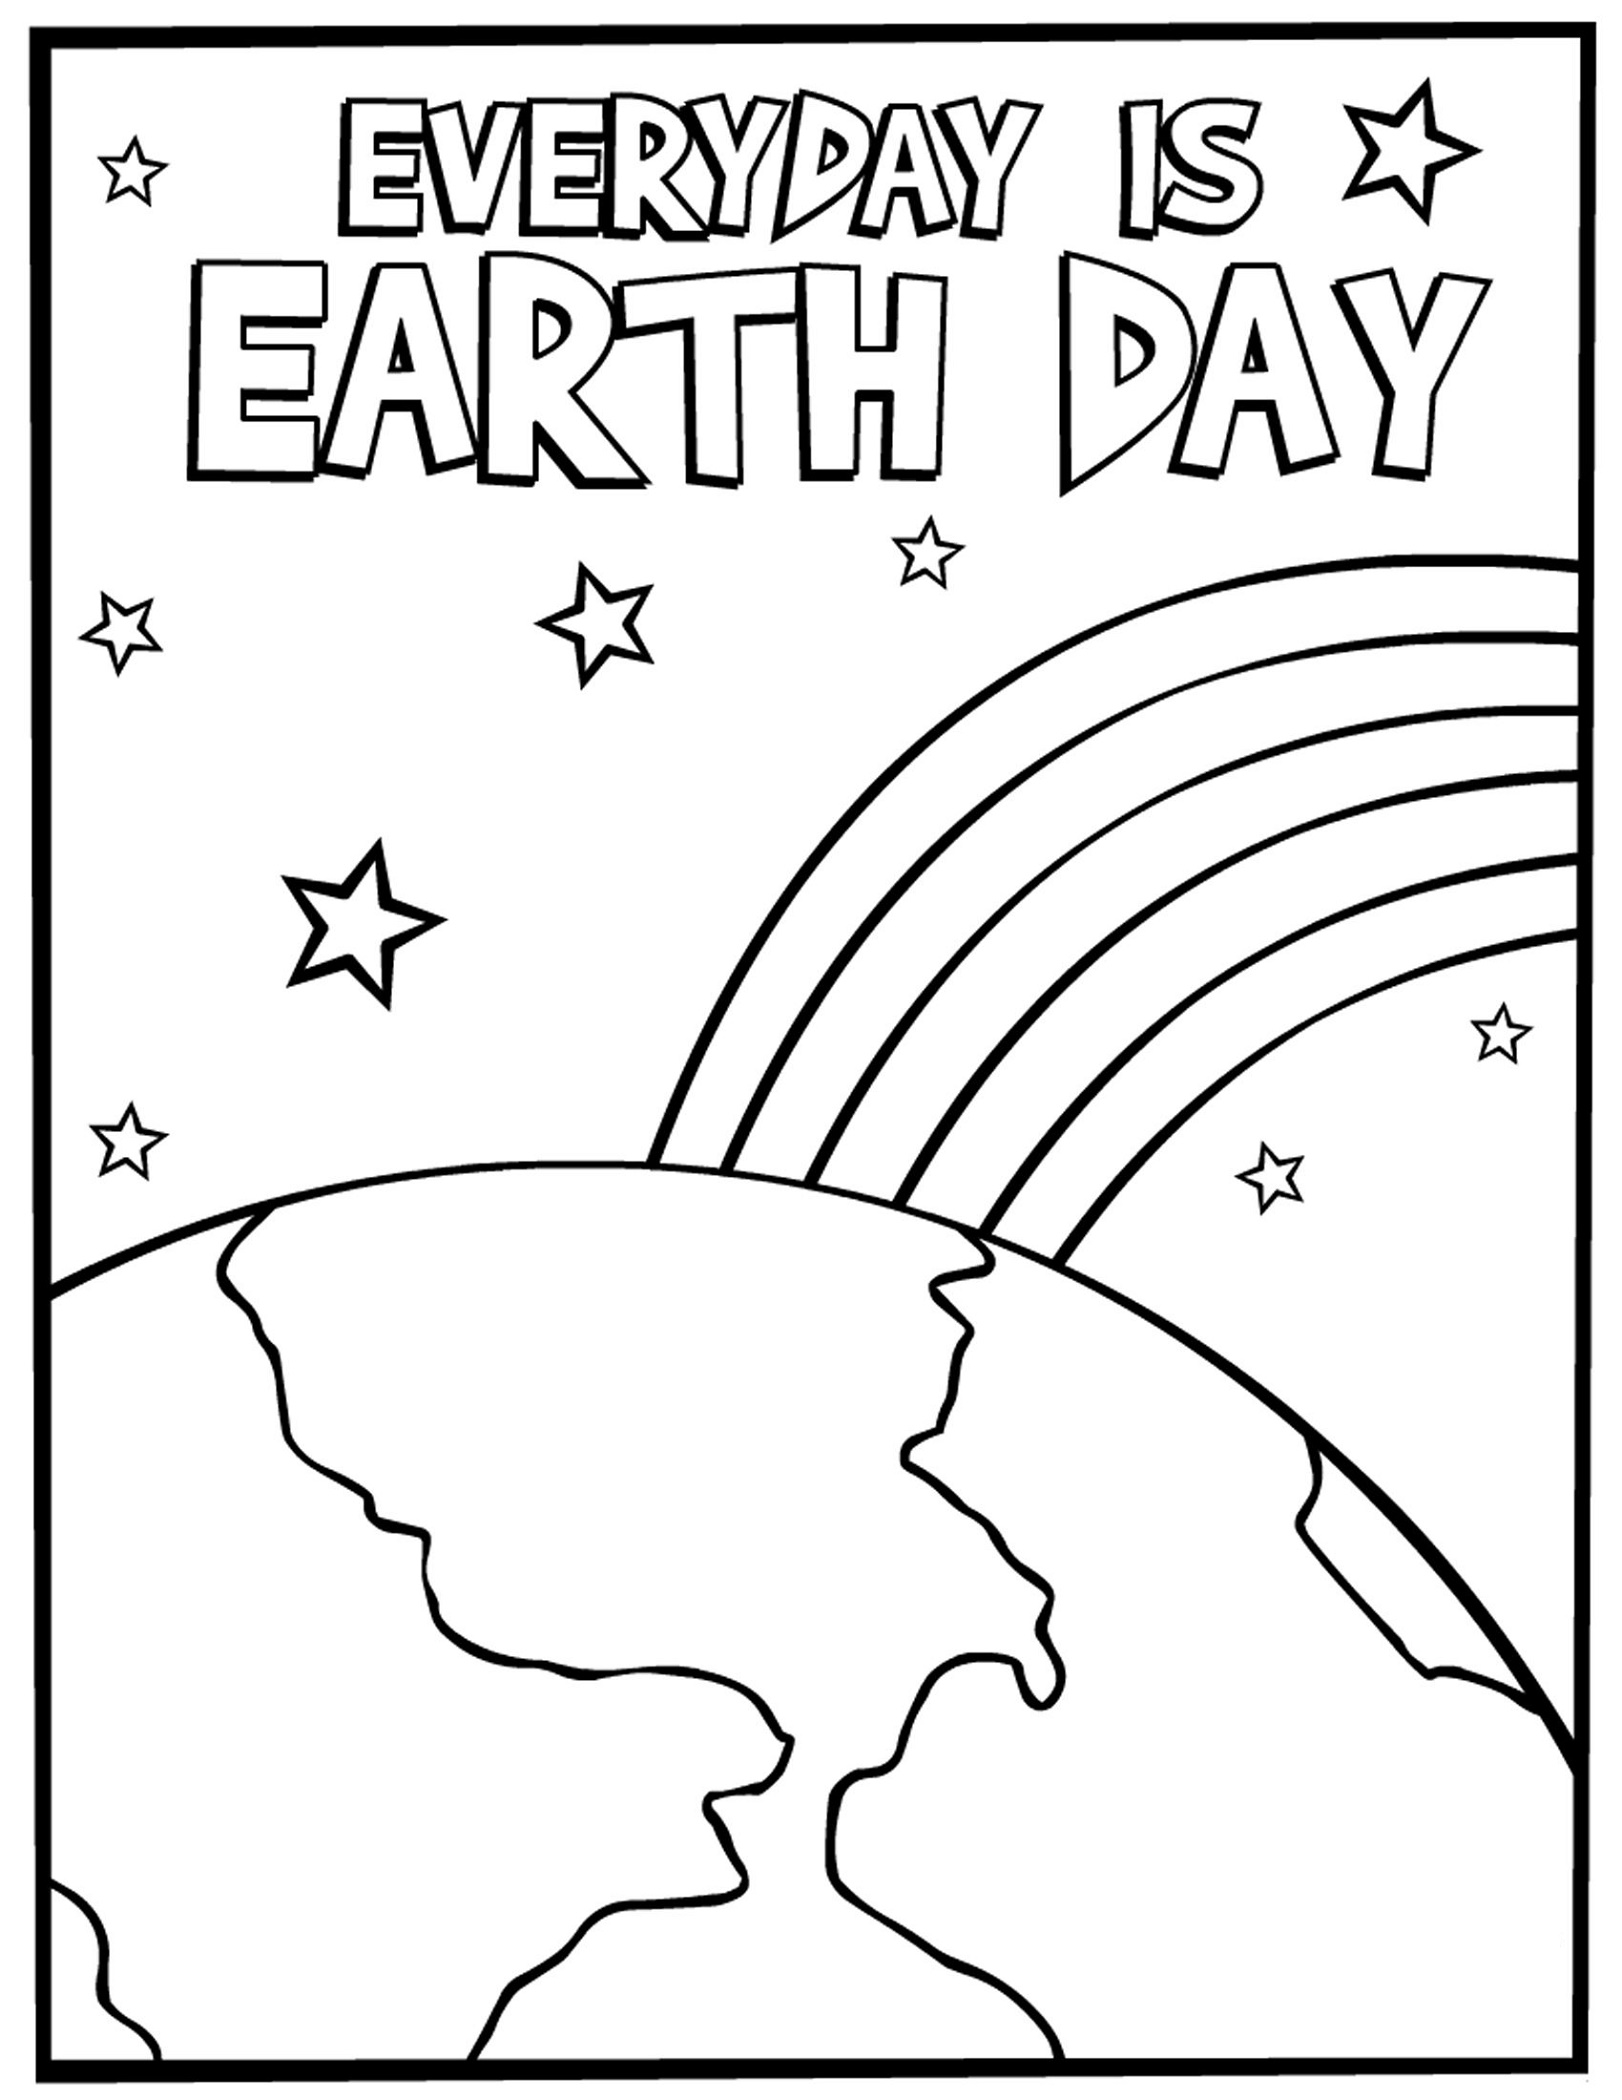 Earth Day Coloring Pages Printable